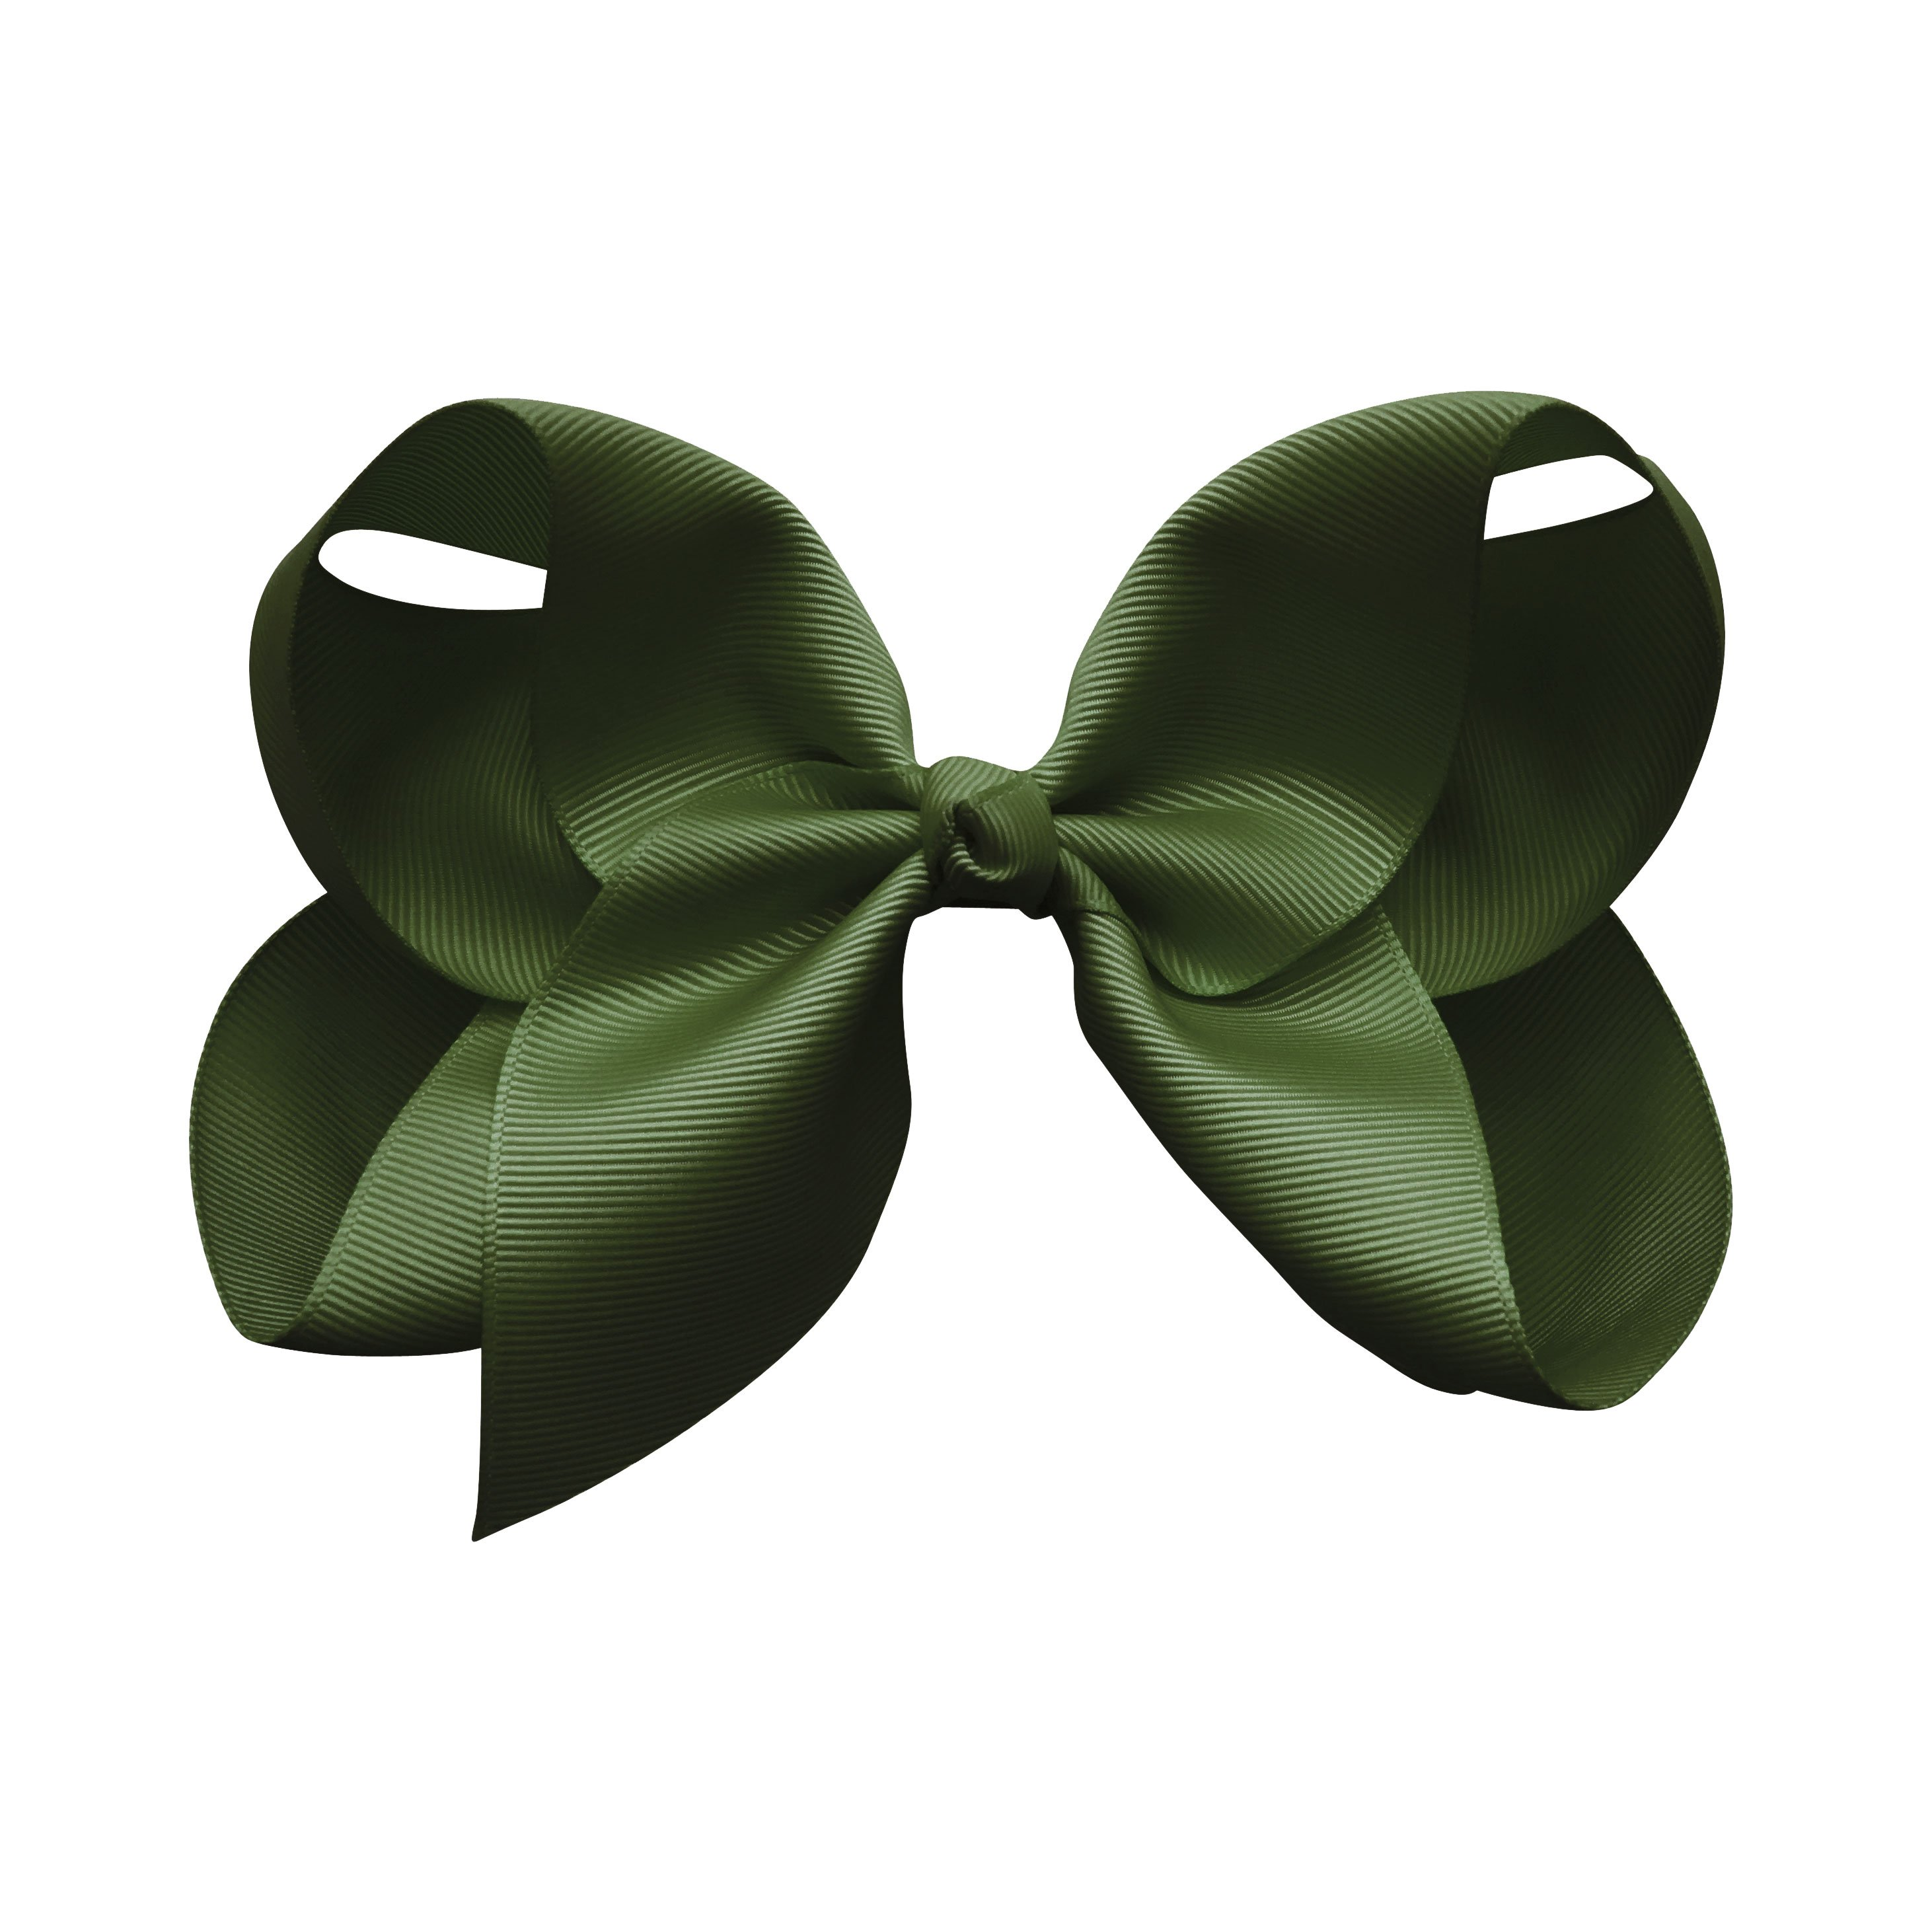 Image of Jumbo Boutique Bow - alligator clip - moss